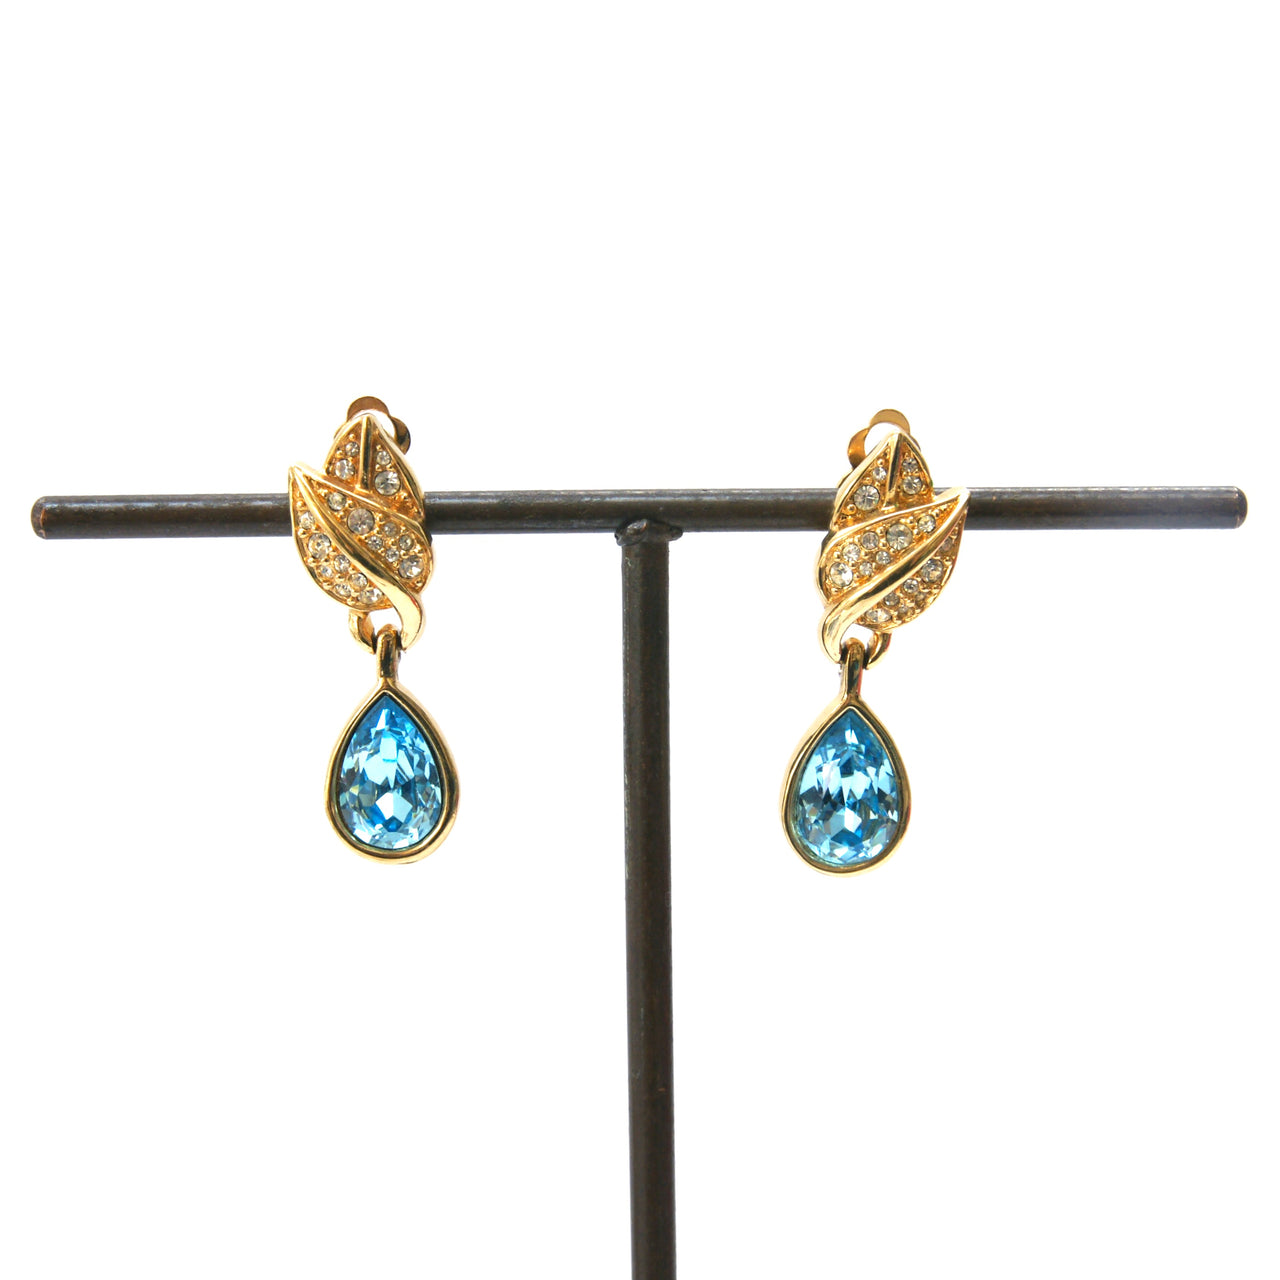 Eclectica Vintage Jewellery | UK | 1990s Swarovski Crystal Clip-On Drop Earrings, gold plate and blue crystal